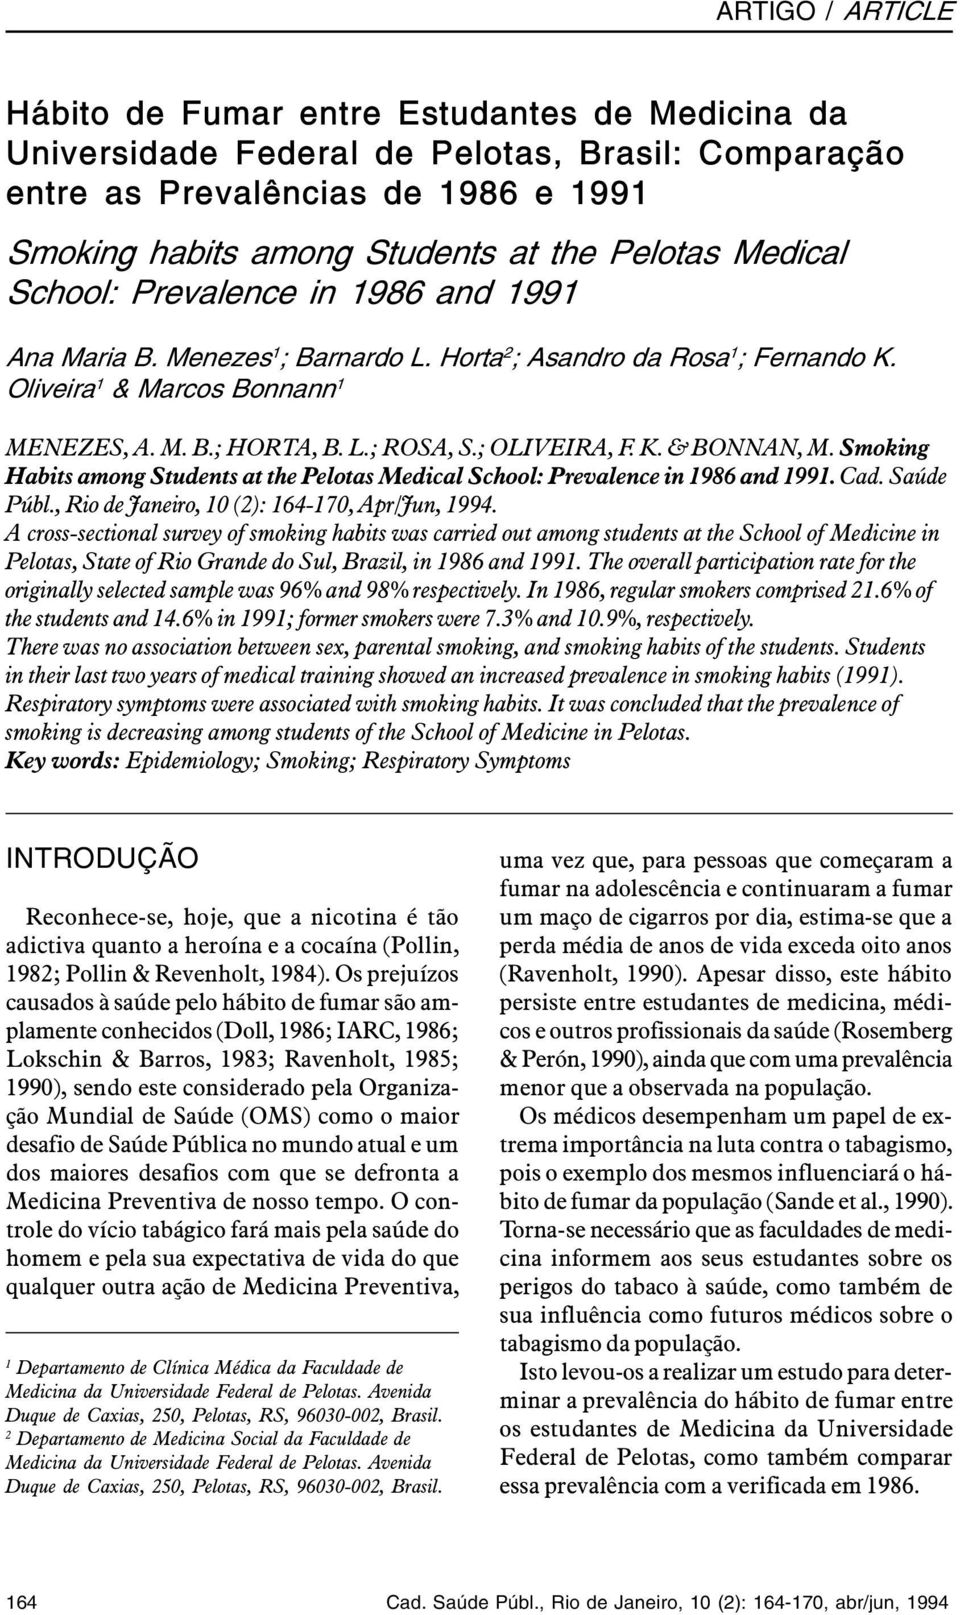 ; OLIVEIRA, F. K. & BONNAN, M. Smoking Habits among Students at the Pelotas Medical School: Prevalence in 1986 and 1991. Cad. Saúde Públ., Rio de Janeiro, 10 (2): 164-170, Apr/Jun, 1994.